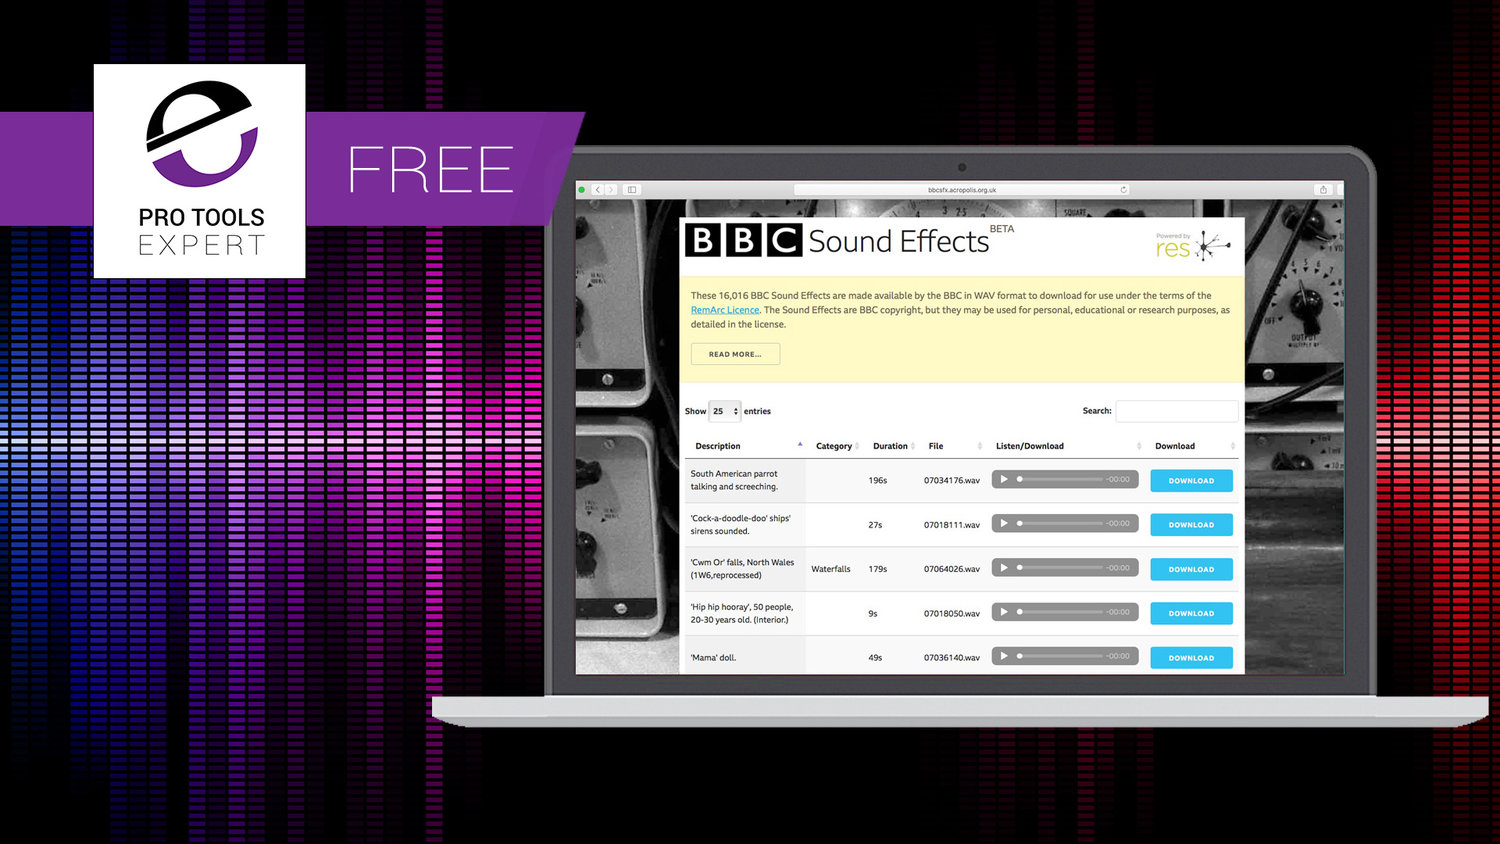 Download 16,000 Free Sound Effects From BBC Sample Archive